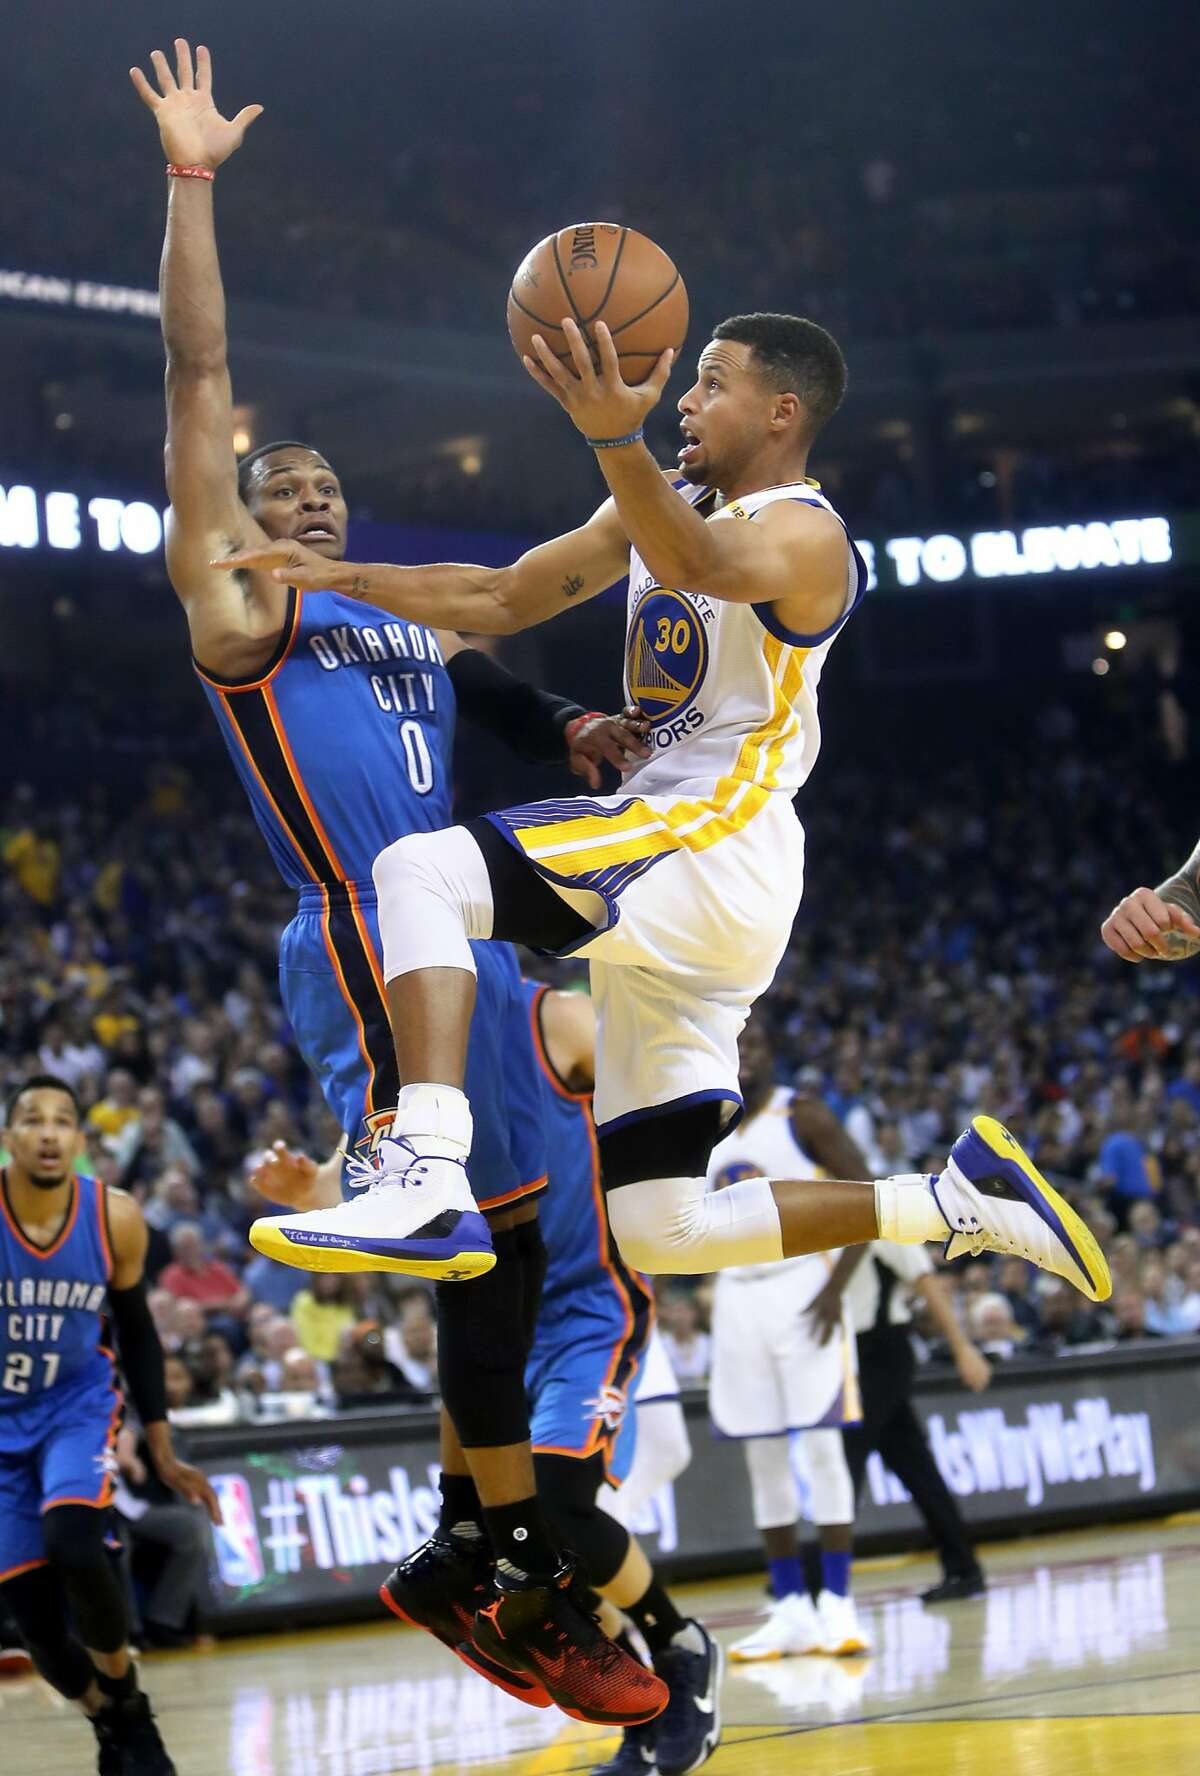 Golden State Warriors' Stephen Curry scores against Oklahoma City Thunder's Russell Westbrook in 1st quarter during NBA game at Oracle Arena in Oakland, Calif., on Thursday, November 3, 2016.